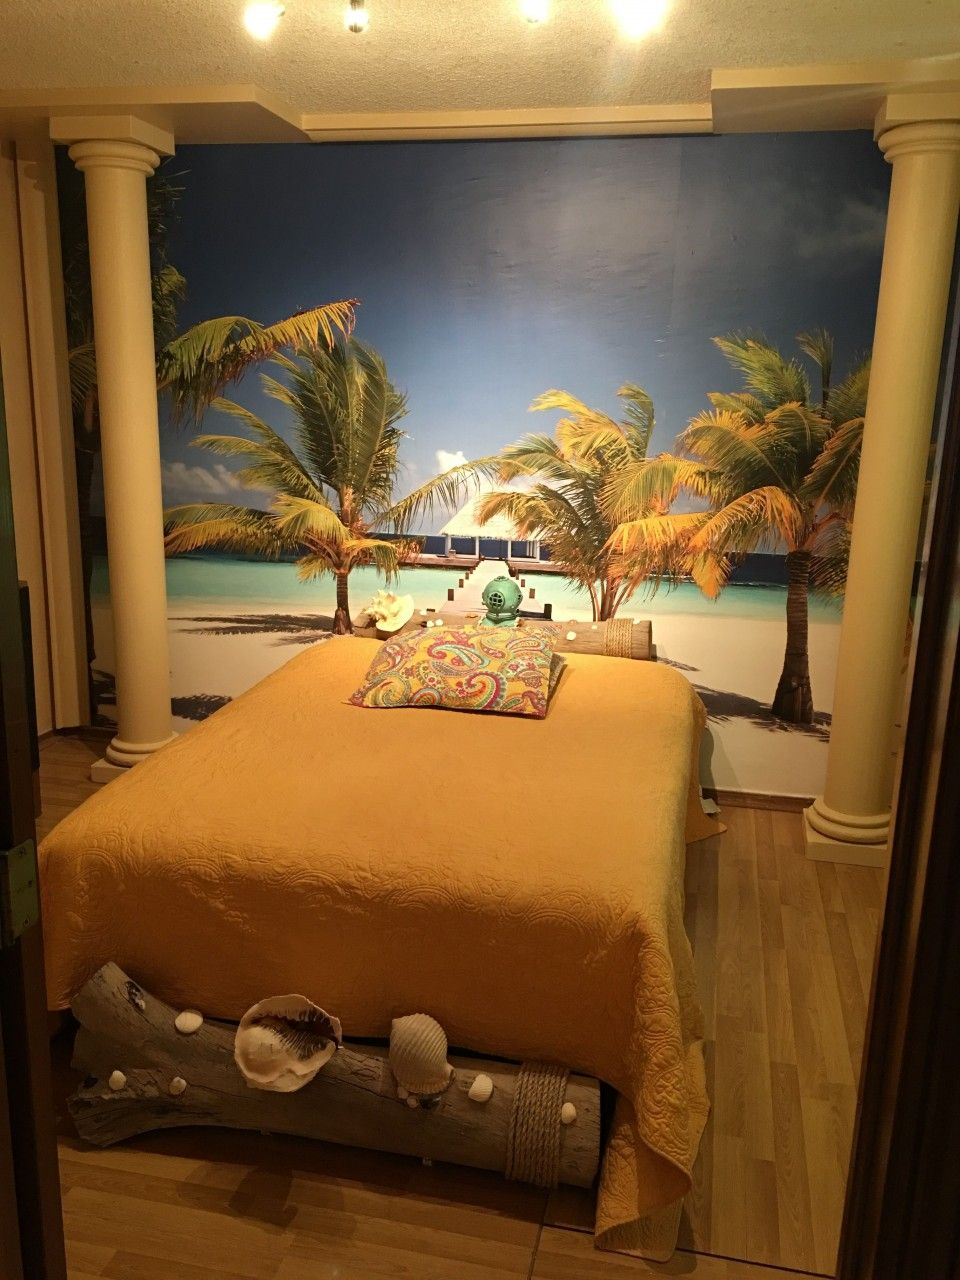 A customer transformed their bedroom into a tropical